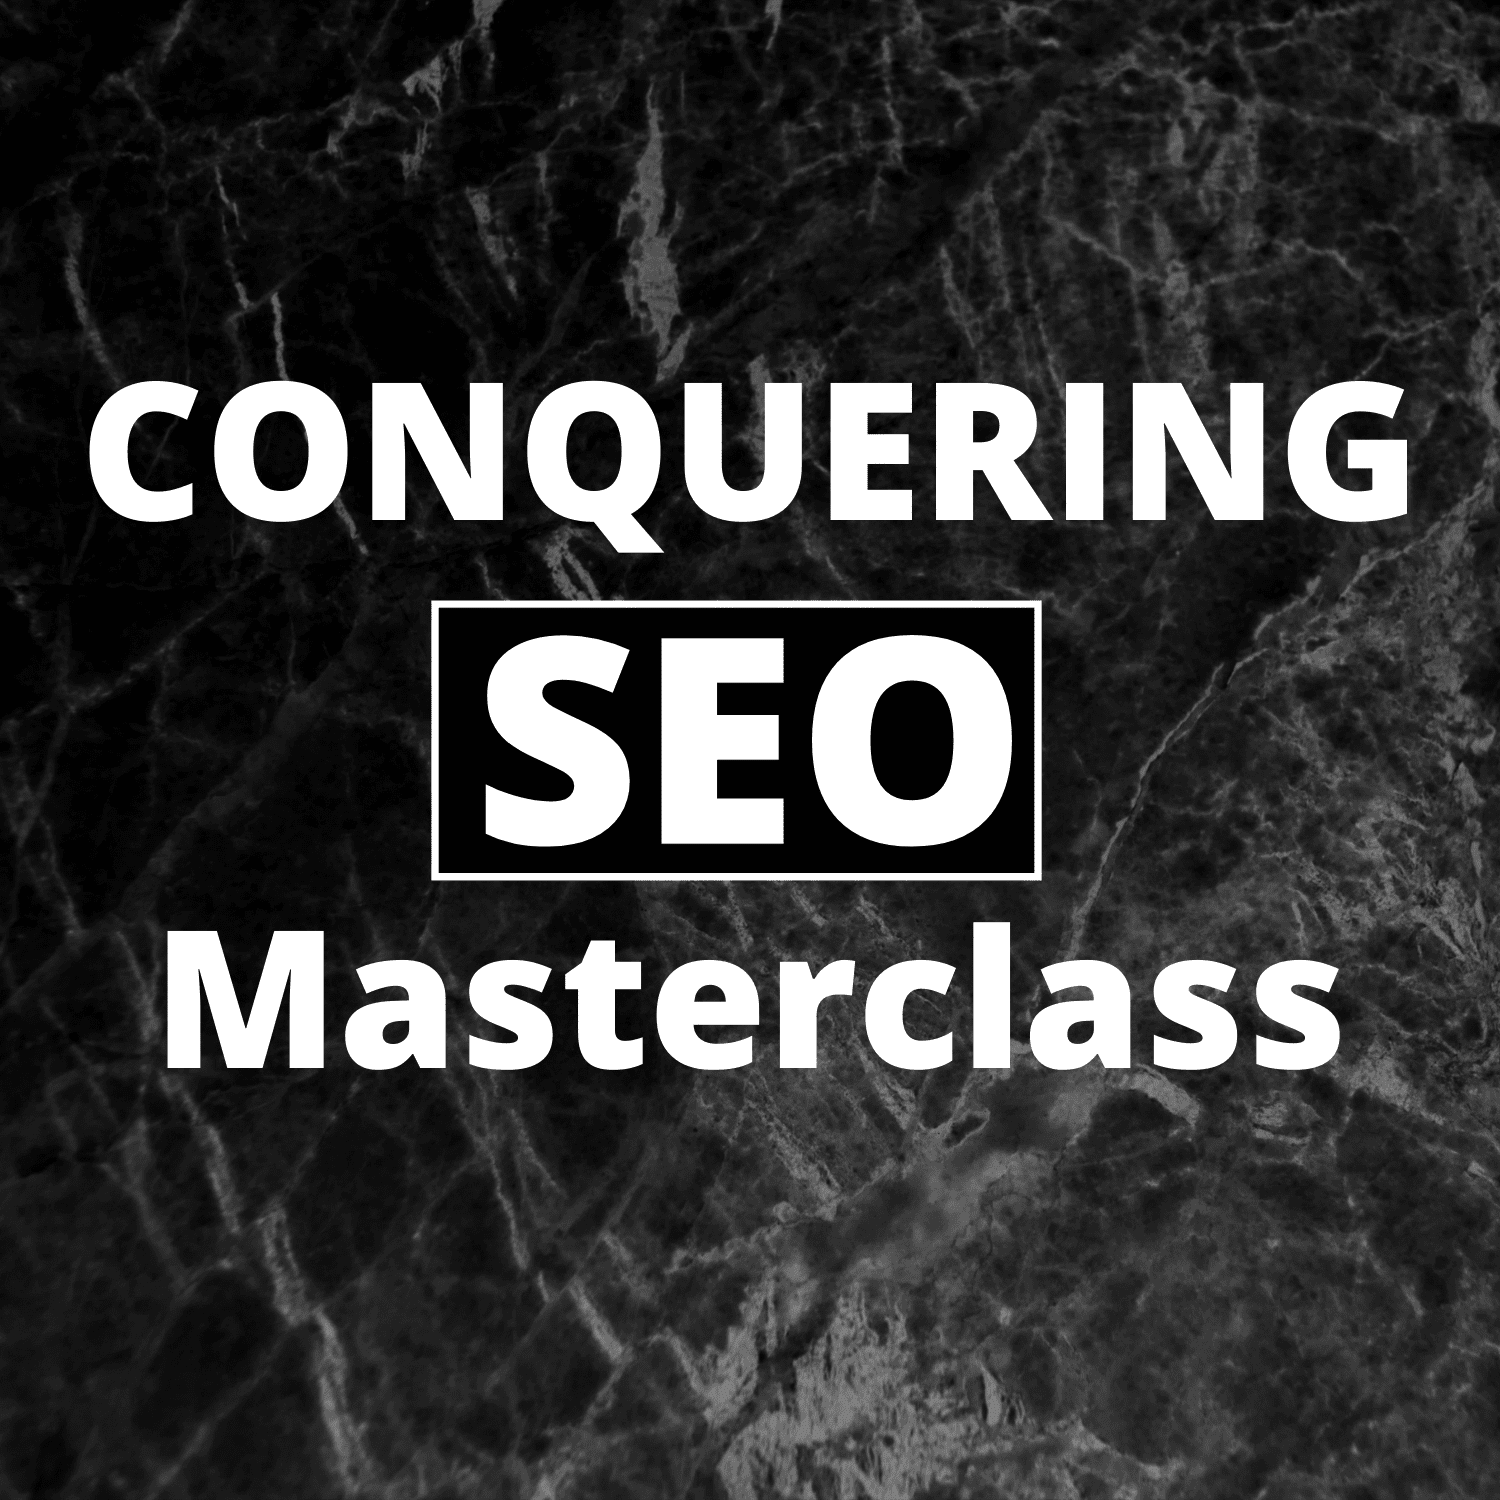 picture of conquering seo masterclass featured image